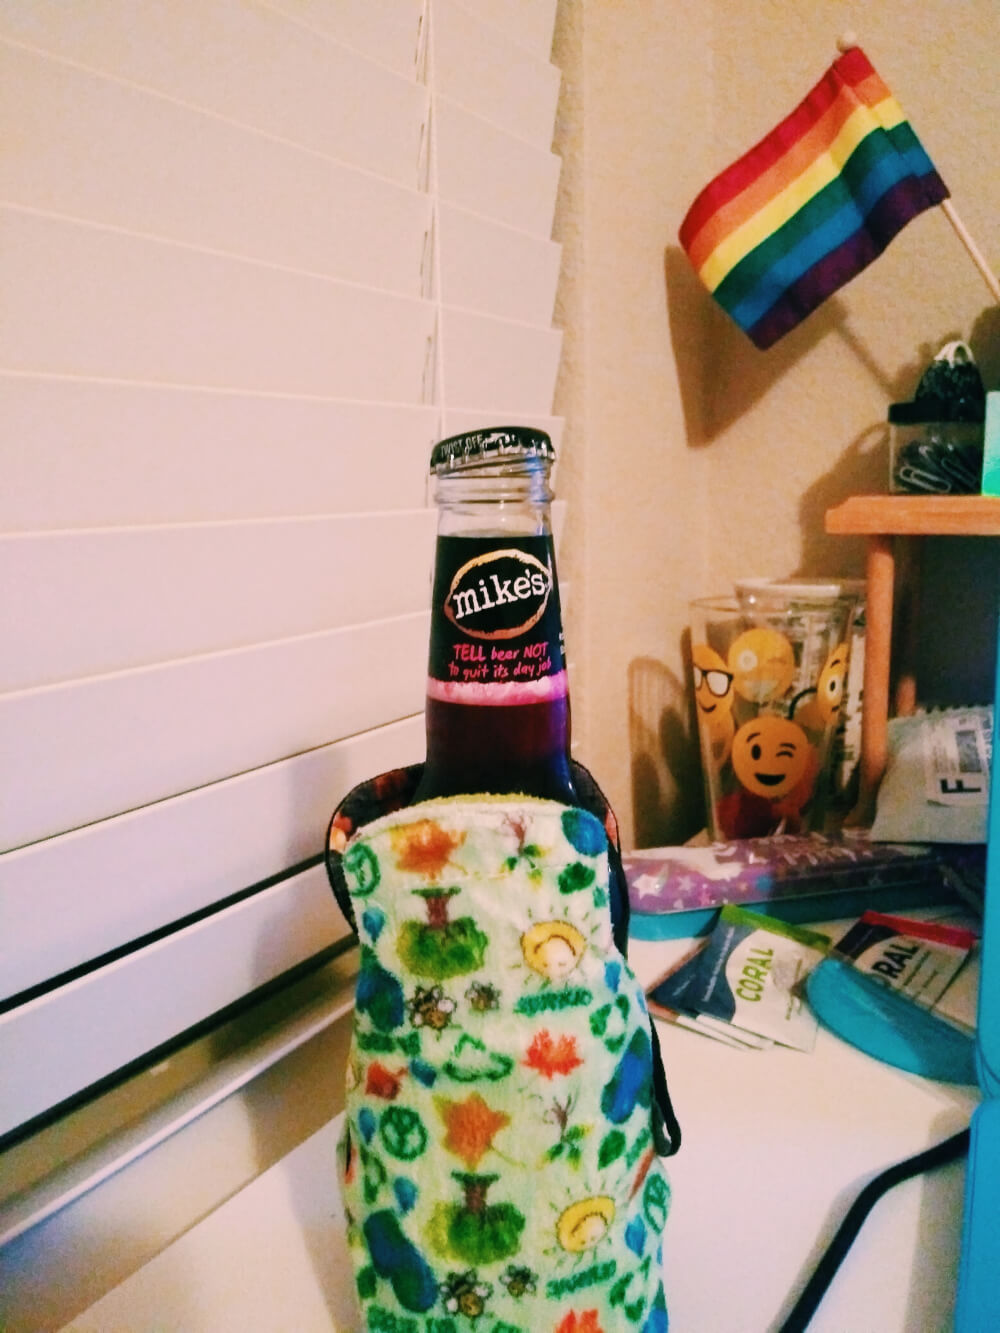 Two cloth pantyliners wrapped around a bottle of Mike's Hard Lemonade Black Cherry